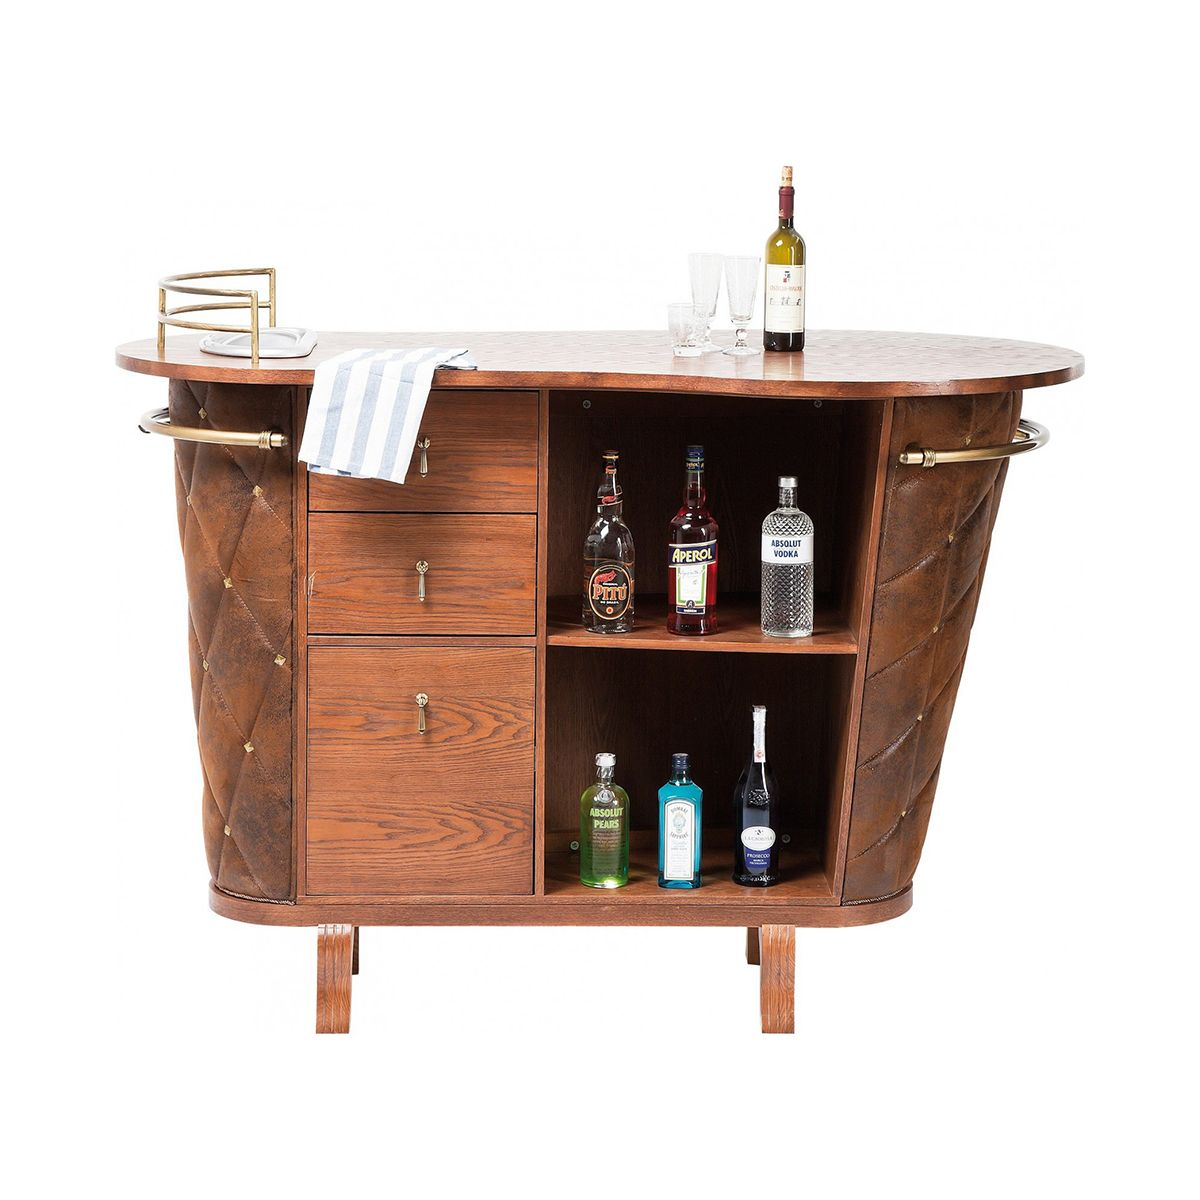 kare design rockstar vintage bar with meuble snack bar. Black Bedroom Furniture Sets. Home Design Ideas